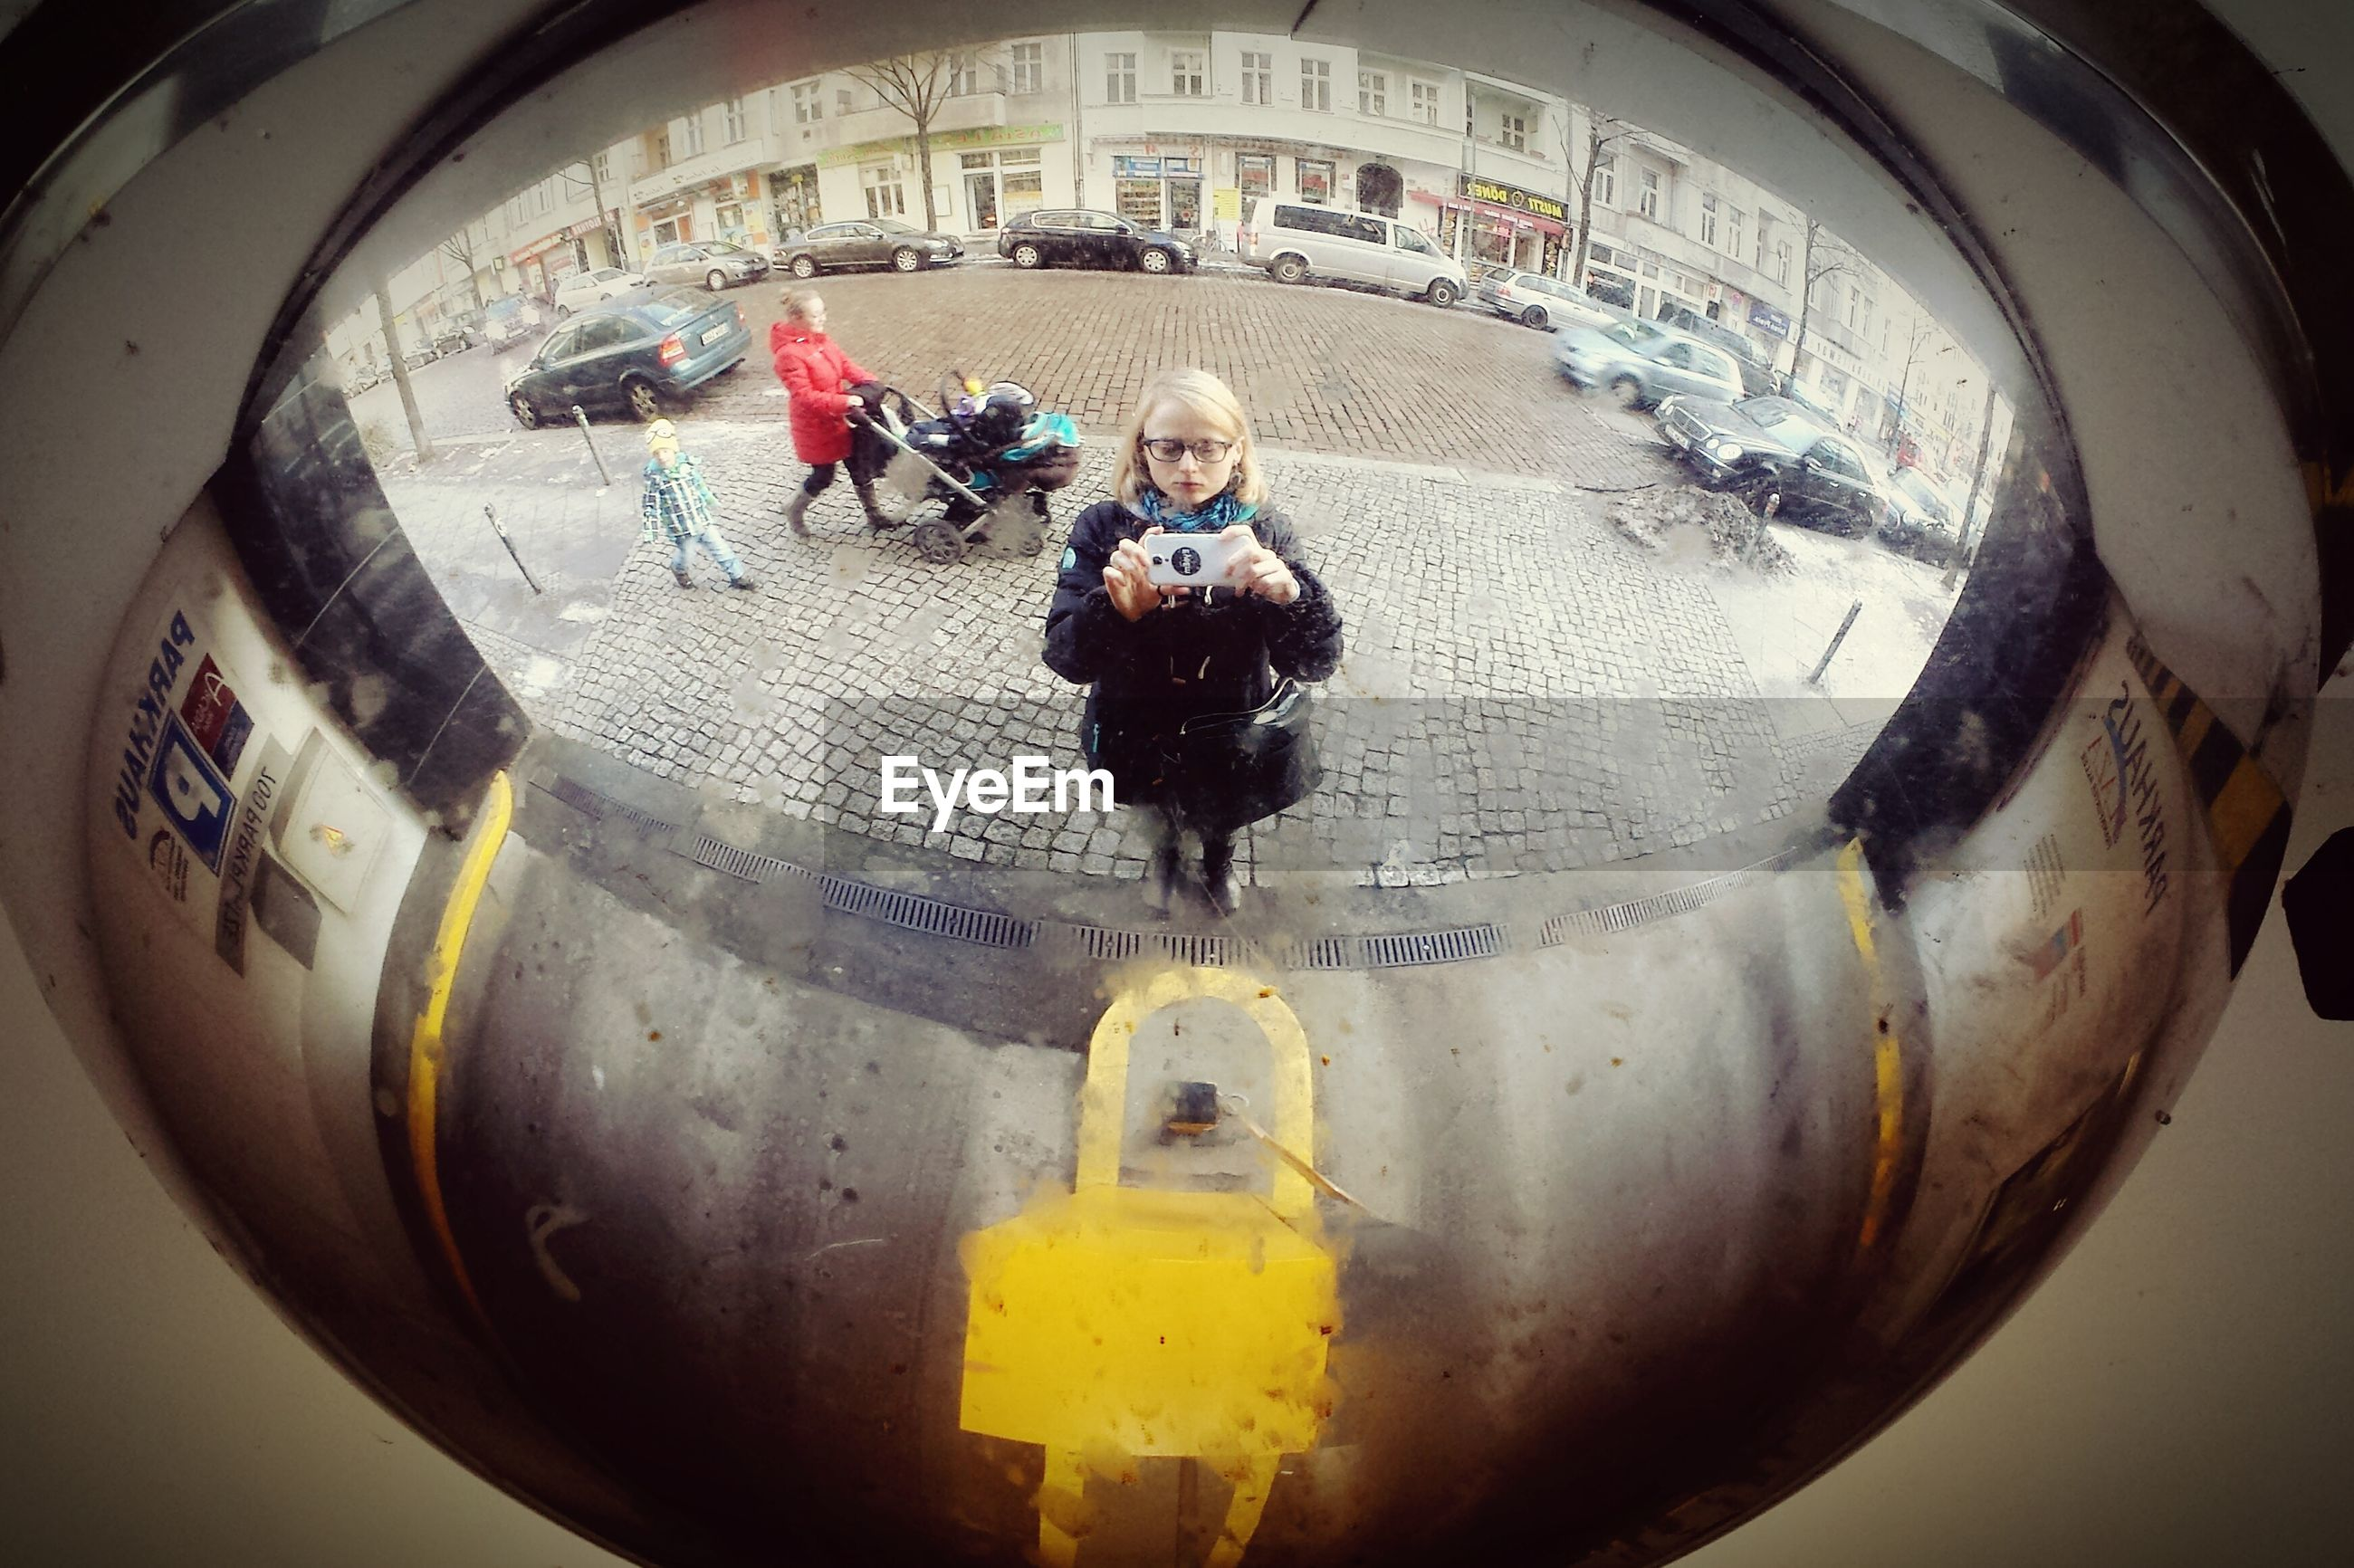 Woman taking selfie on mirror against buildings and cars in city